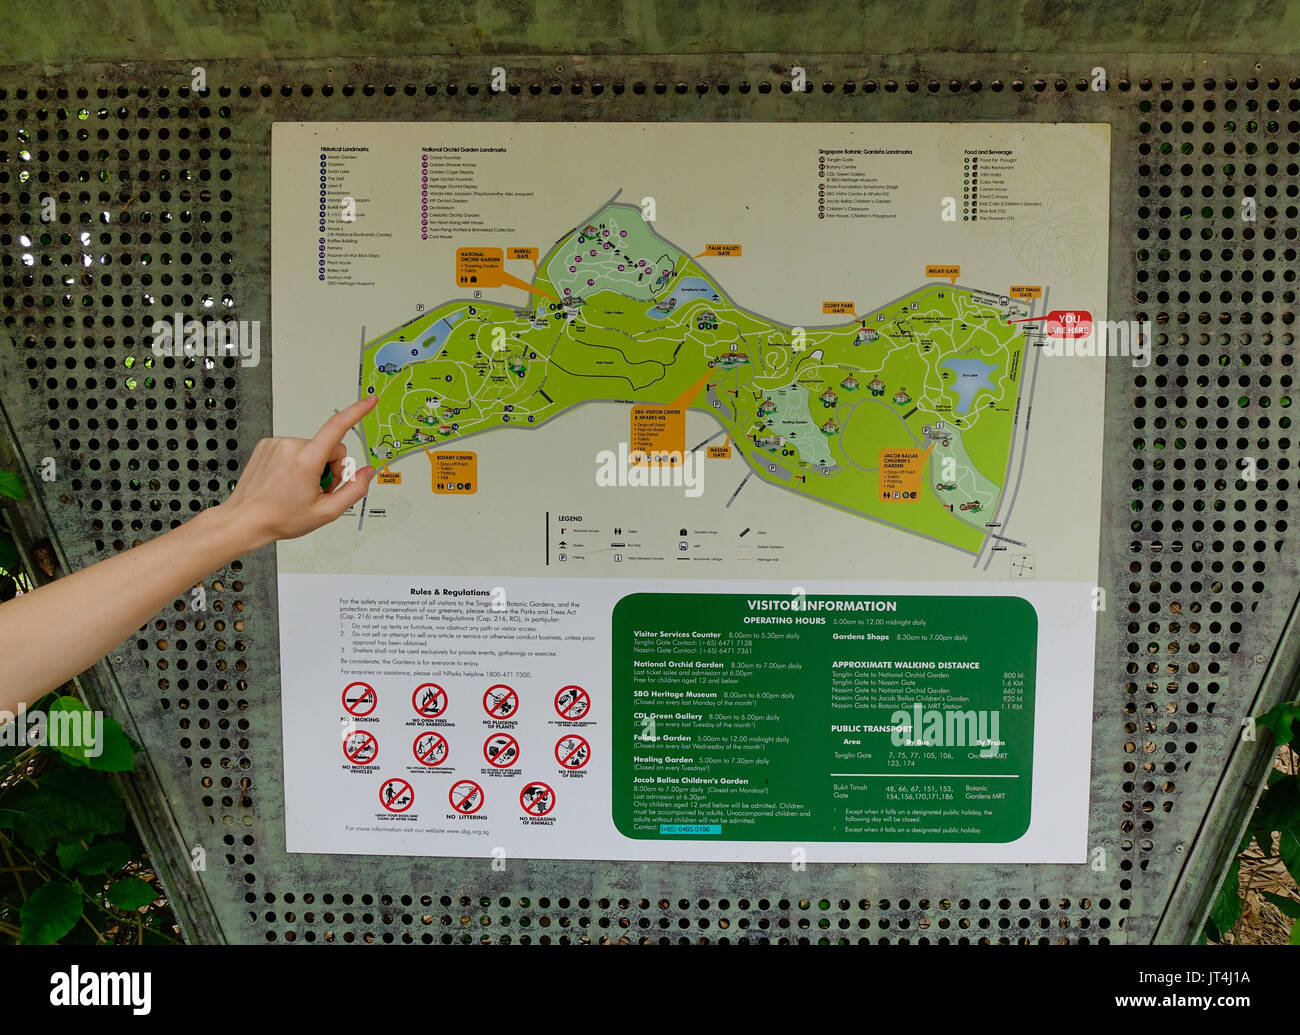 Singapore - Dec 14, 2015. A hand on the map of city park in Singapore. Singapore, referred to as the Lion City, the Garden City, is a sovereign city-s - Stock Image